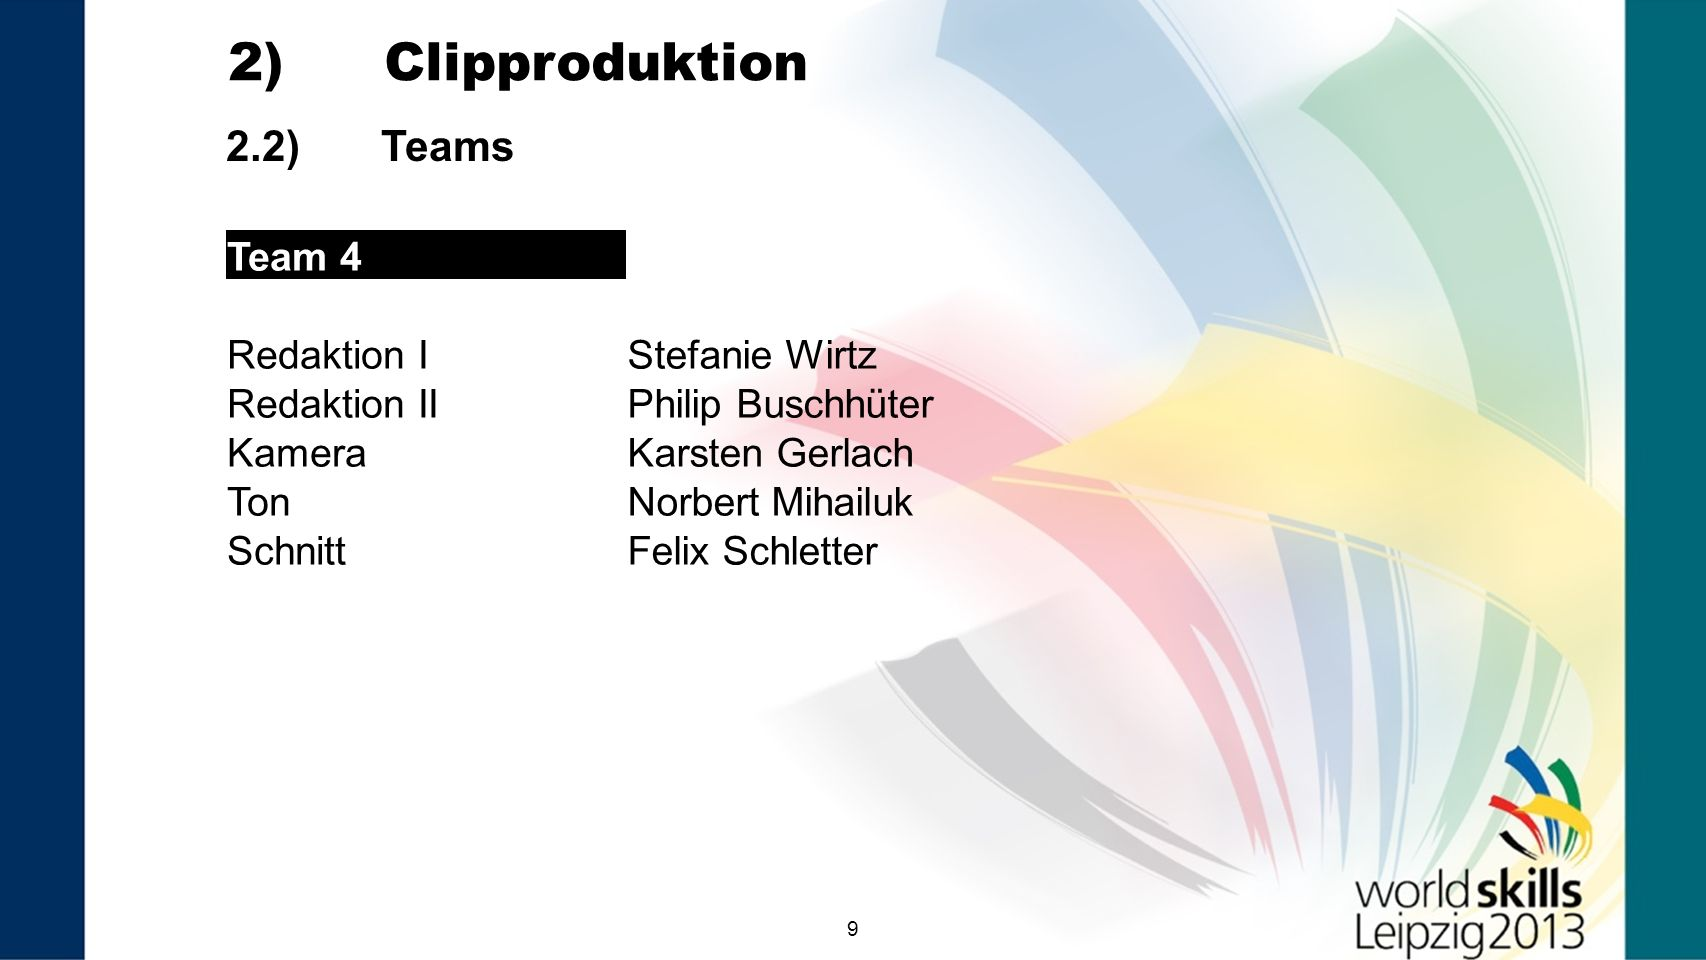 2) Clipproduktion 2.2) Teams Team 4 Redaktion I Stefanie Wirtz